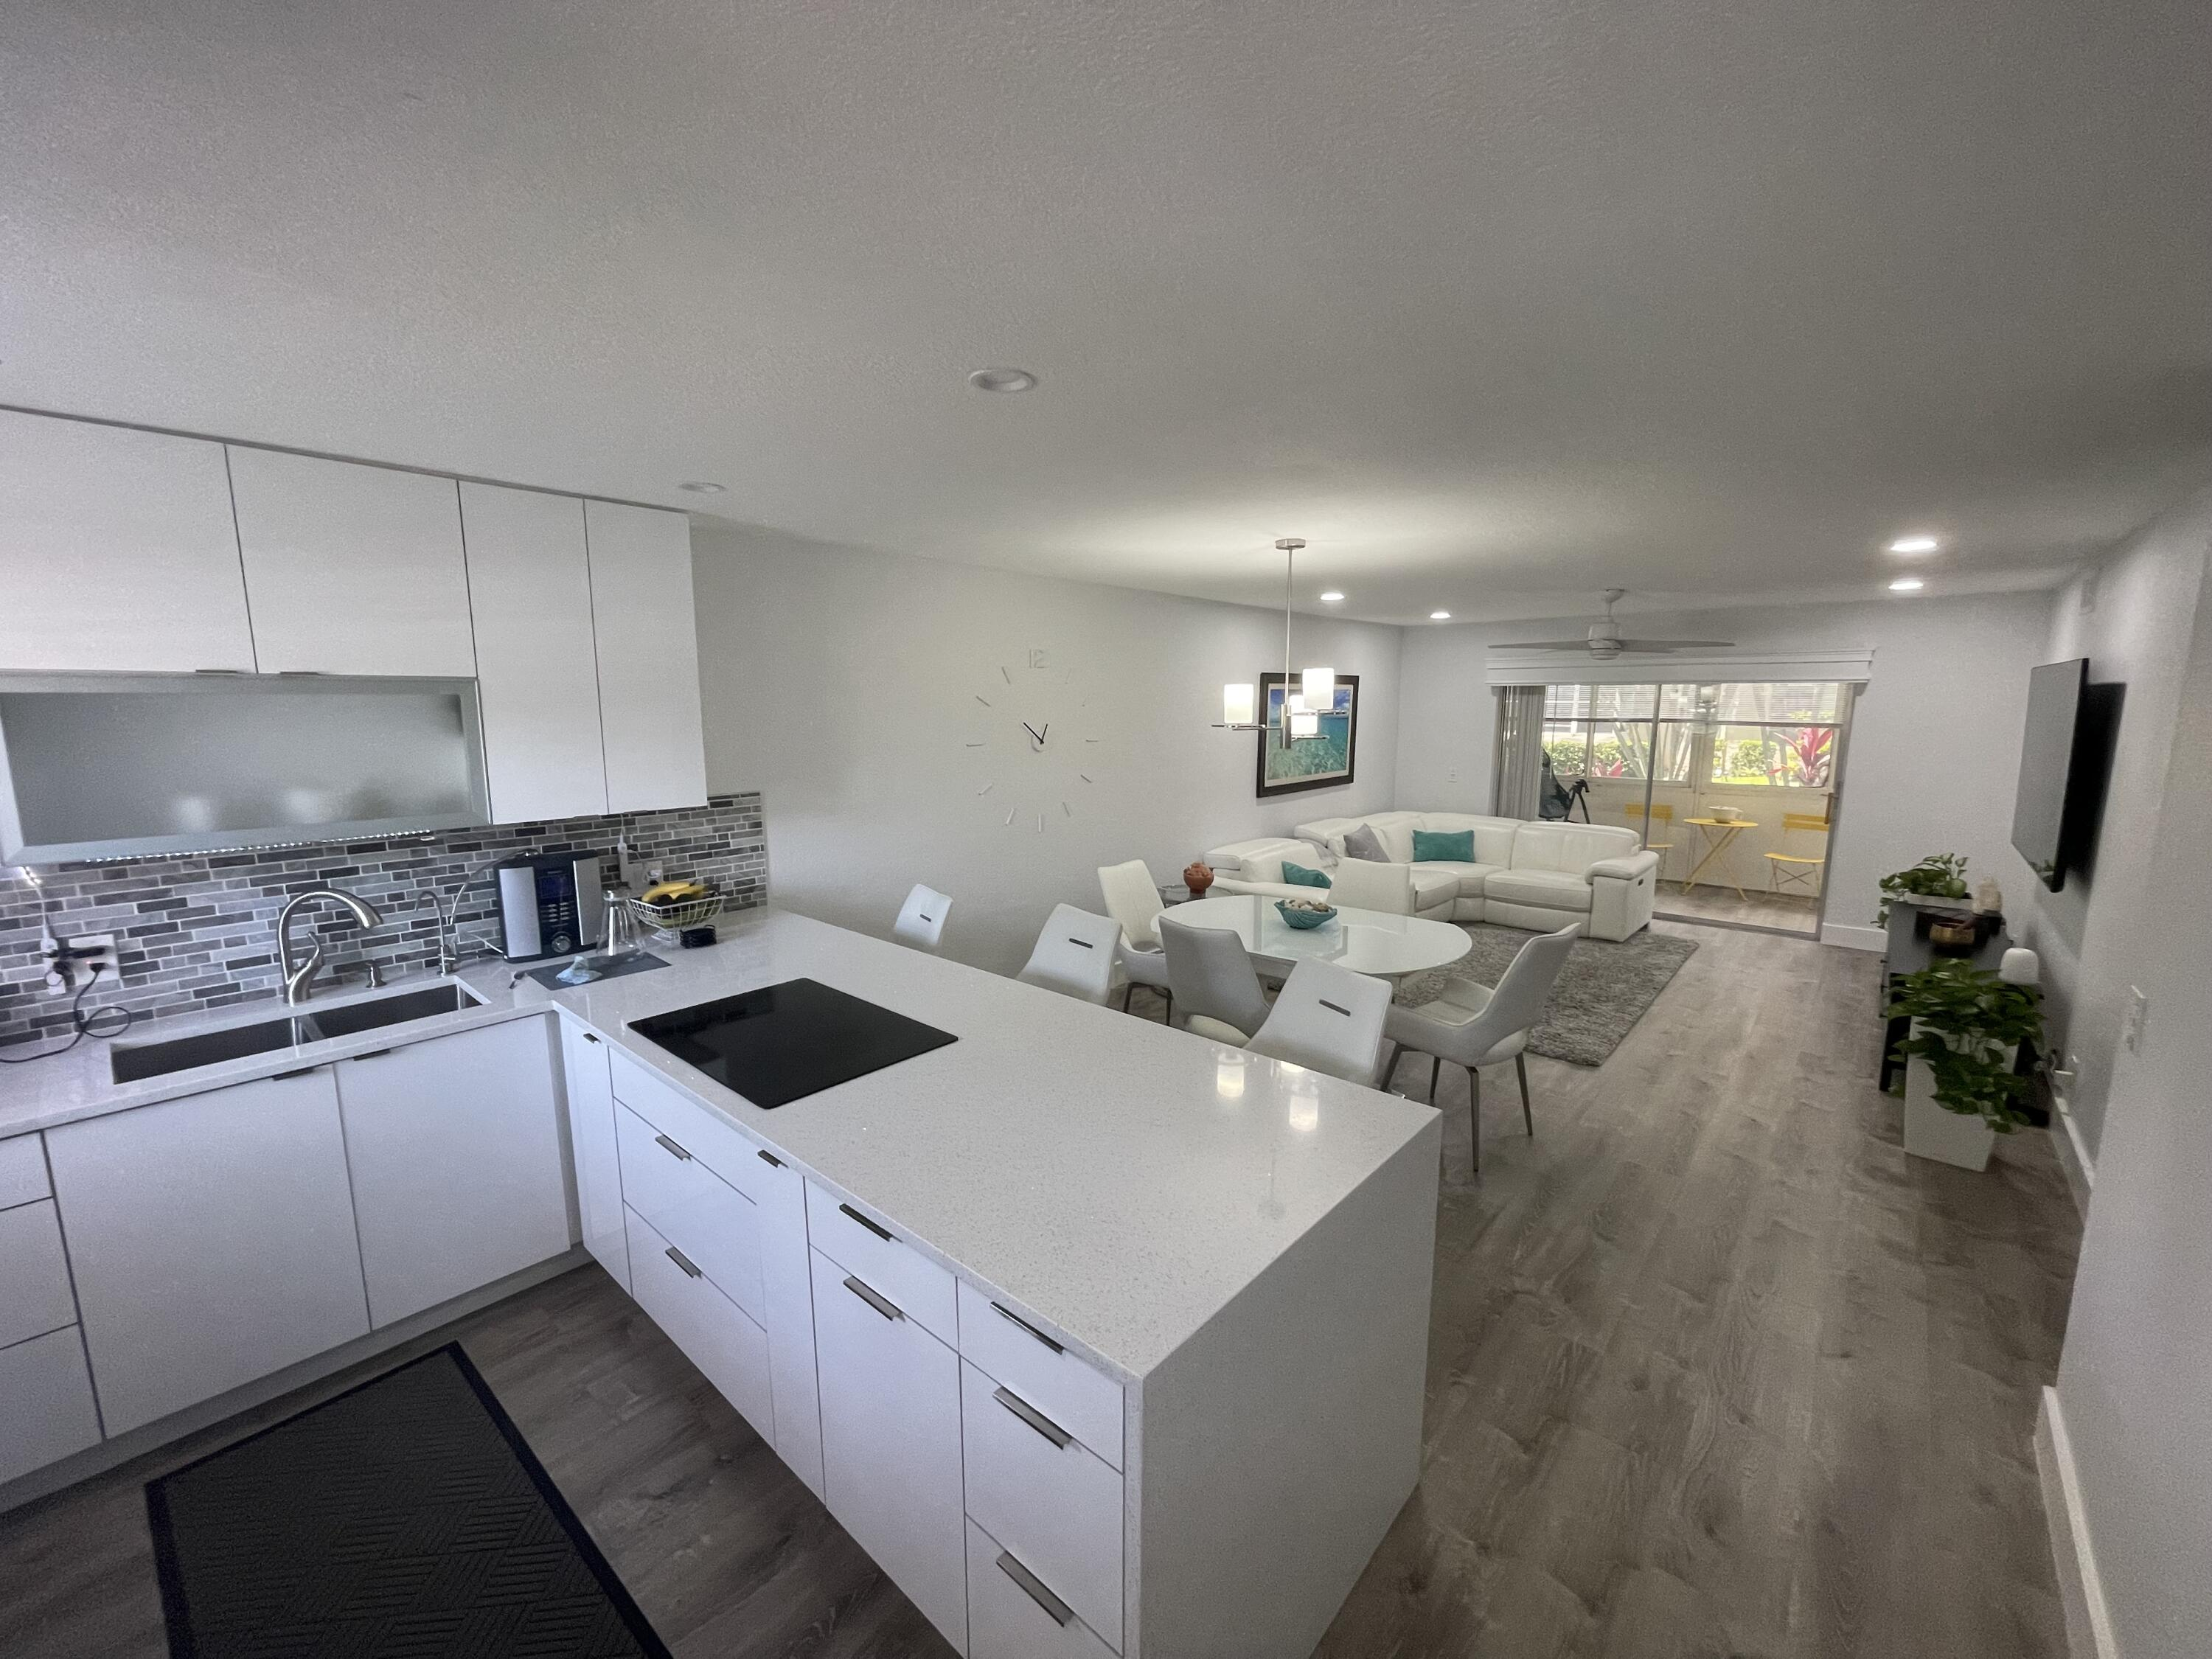 Beautiful apartment in MINT condition. Fully renovated including, recessed lighting, new appliances, new floors, new kitchen, new bathrooms and a corner unit. Located in a quiet 55+ community in Royal Palm and directly across the street from 134-acre Commons Park. The community also has a pool and small workout facility.